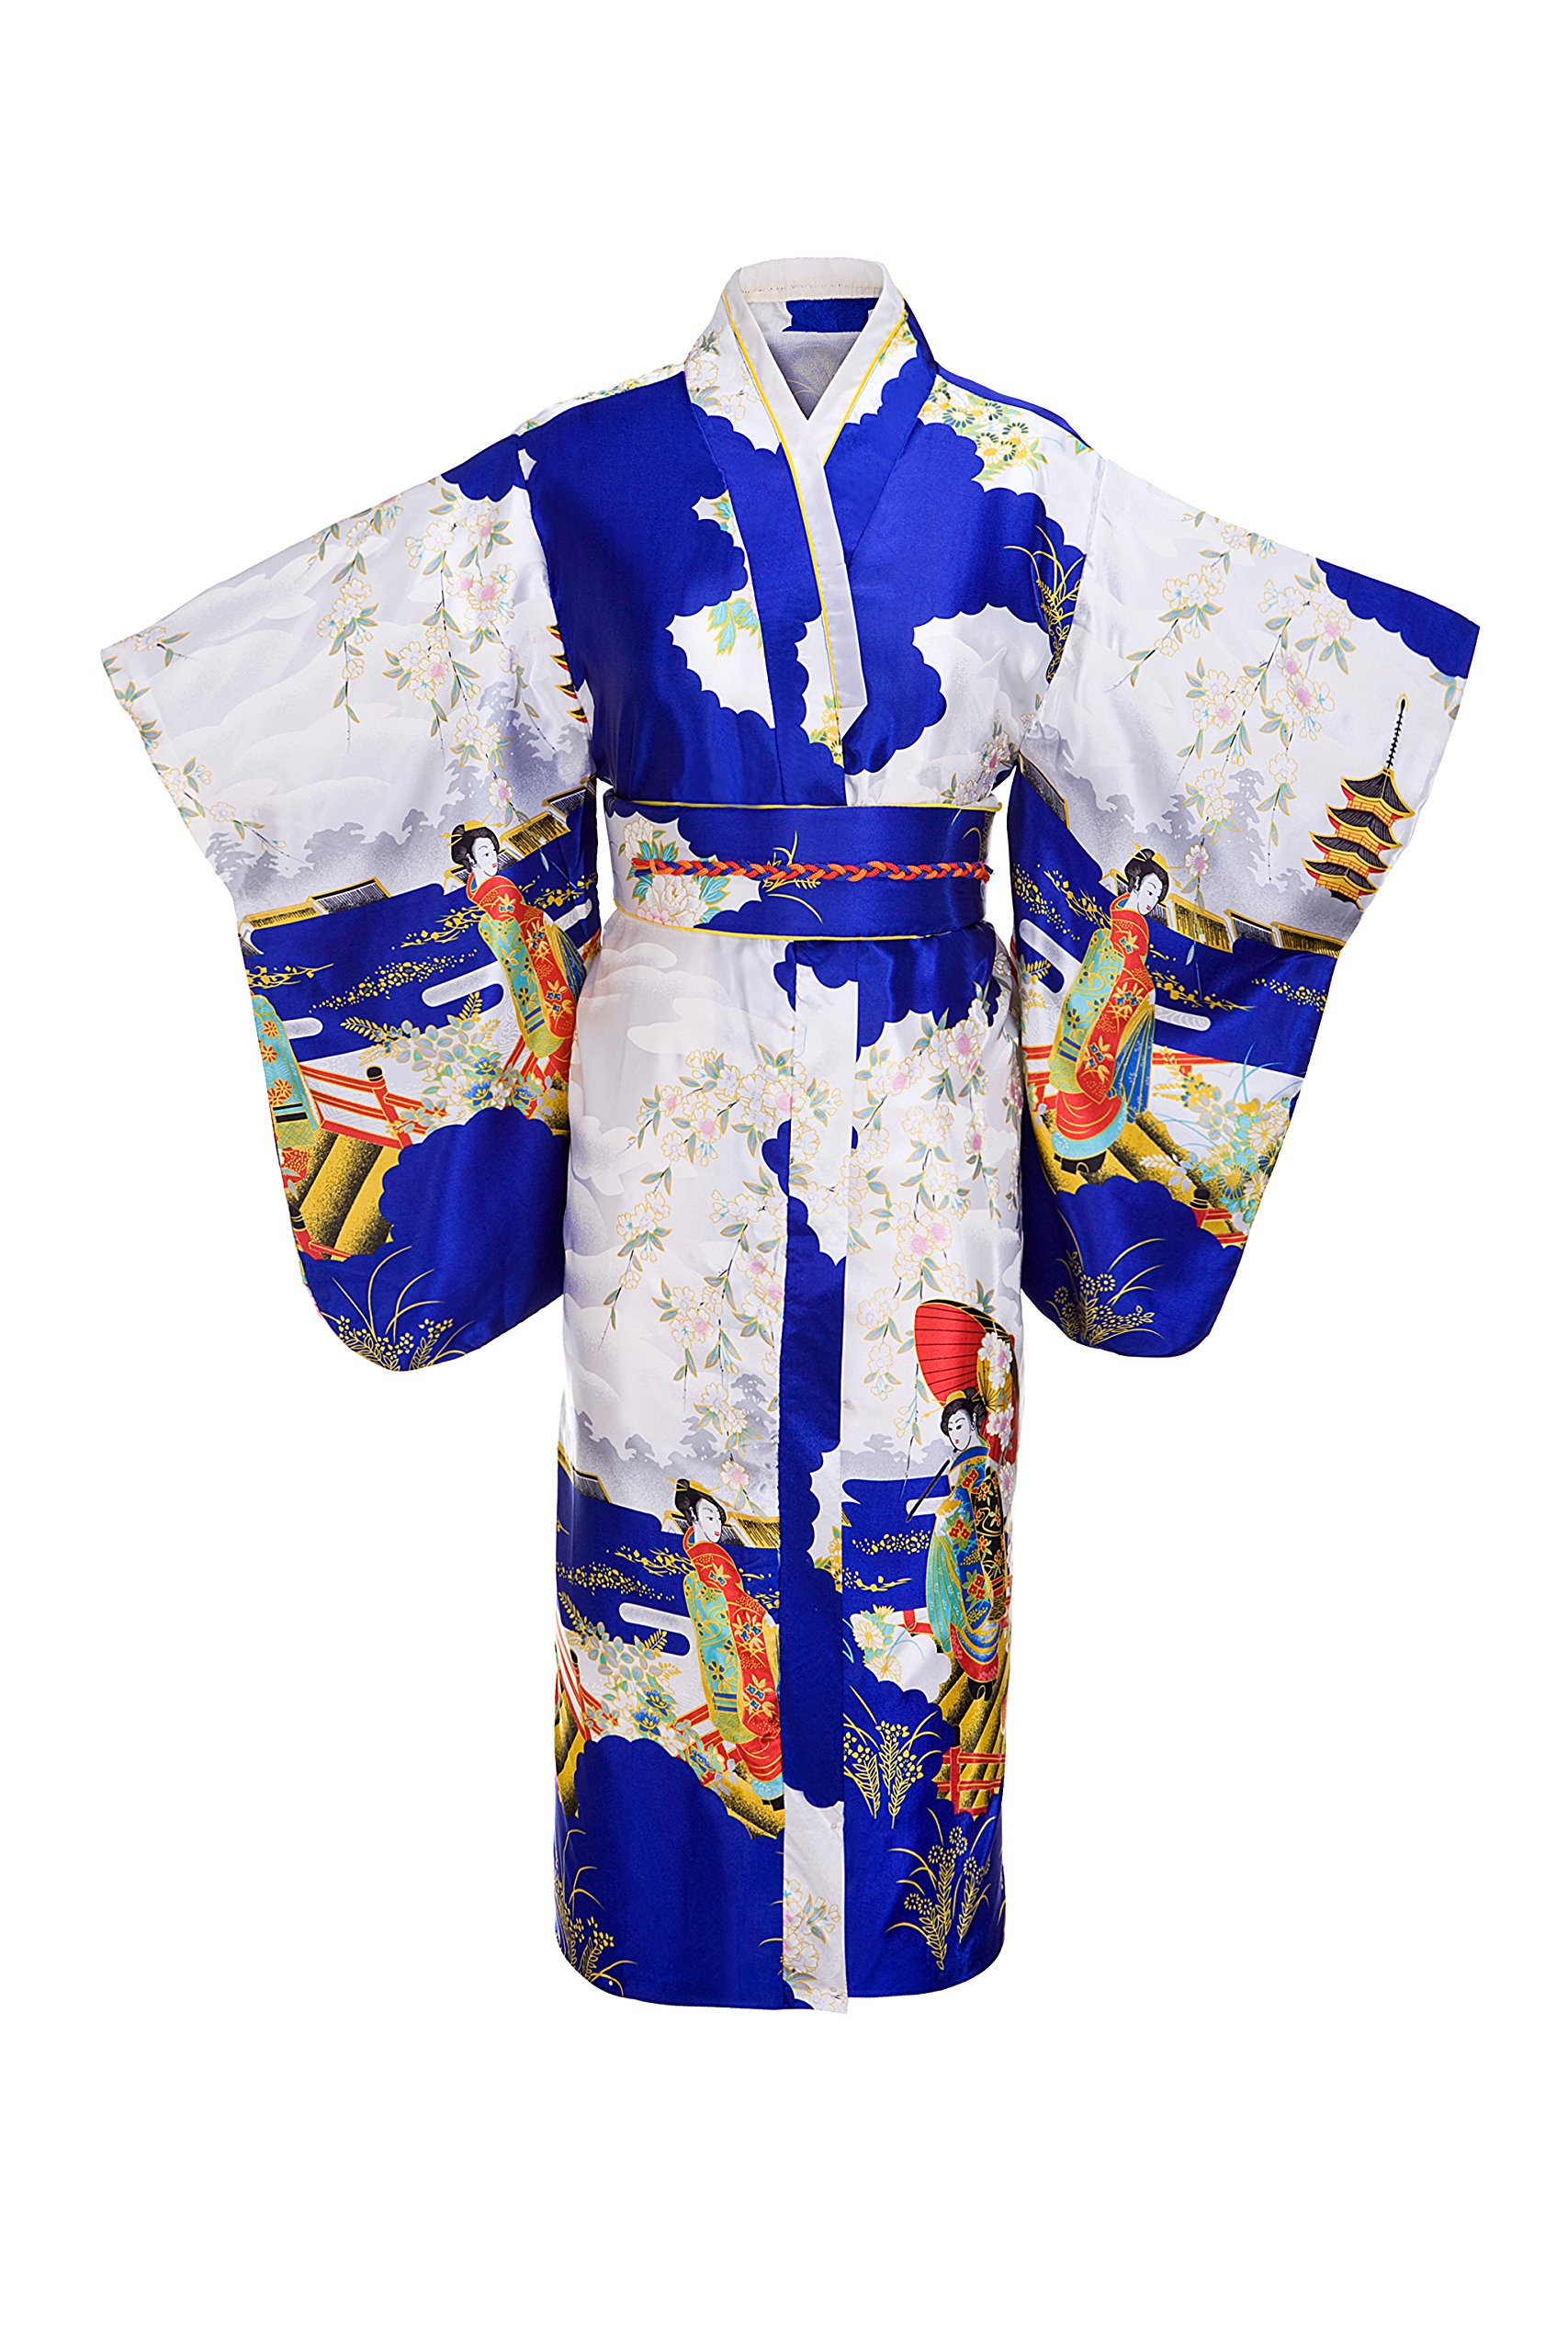 Old-to-new Women's Silk Traditional Japanese Kimono Robe with Pagoda Print Royal Blue